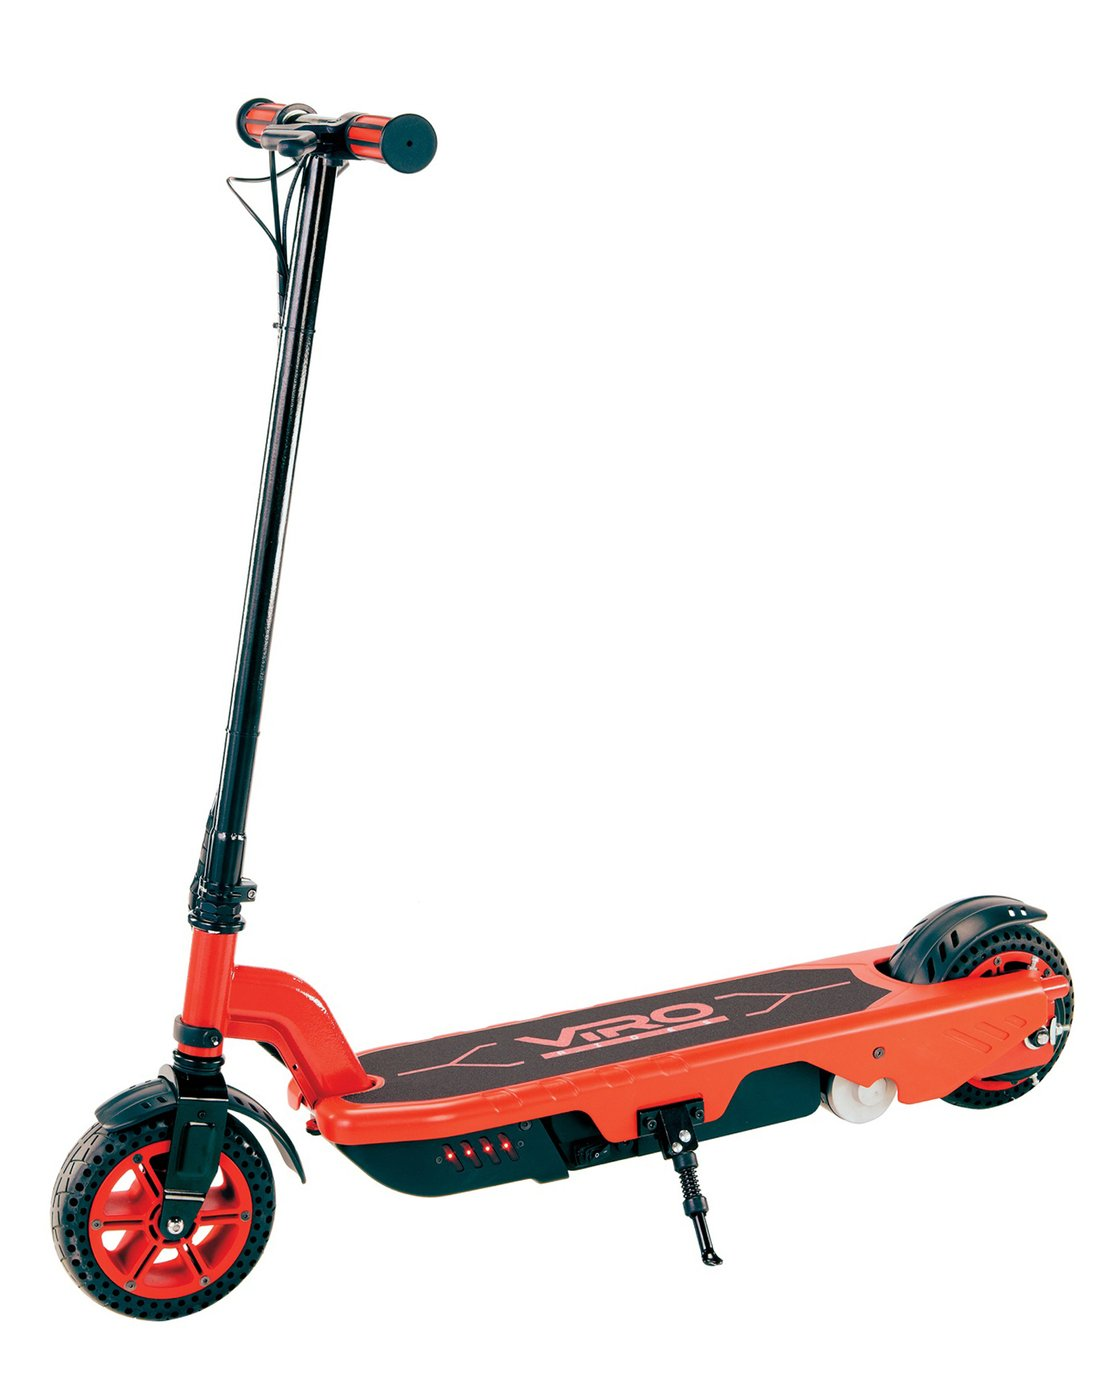 VIRO VR550E 12V Electric Scooter